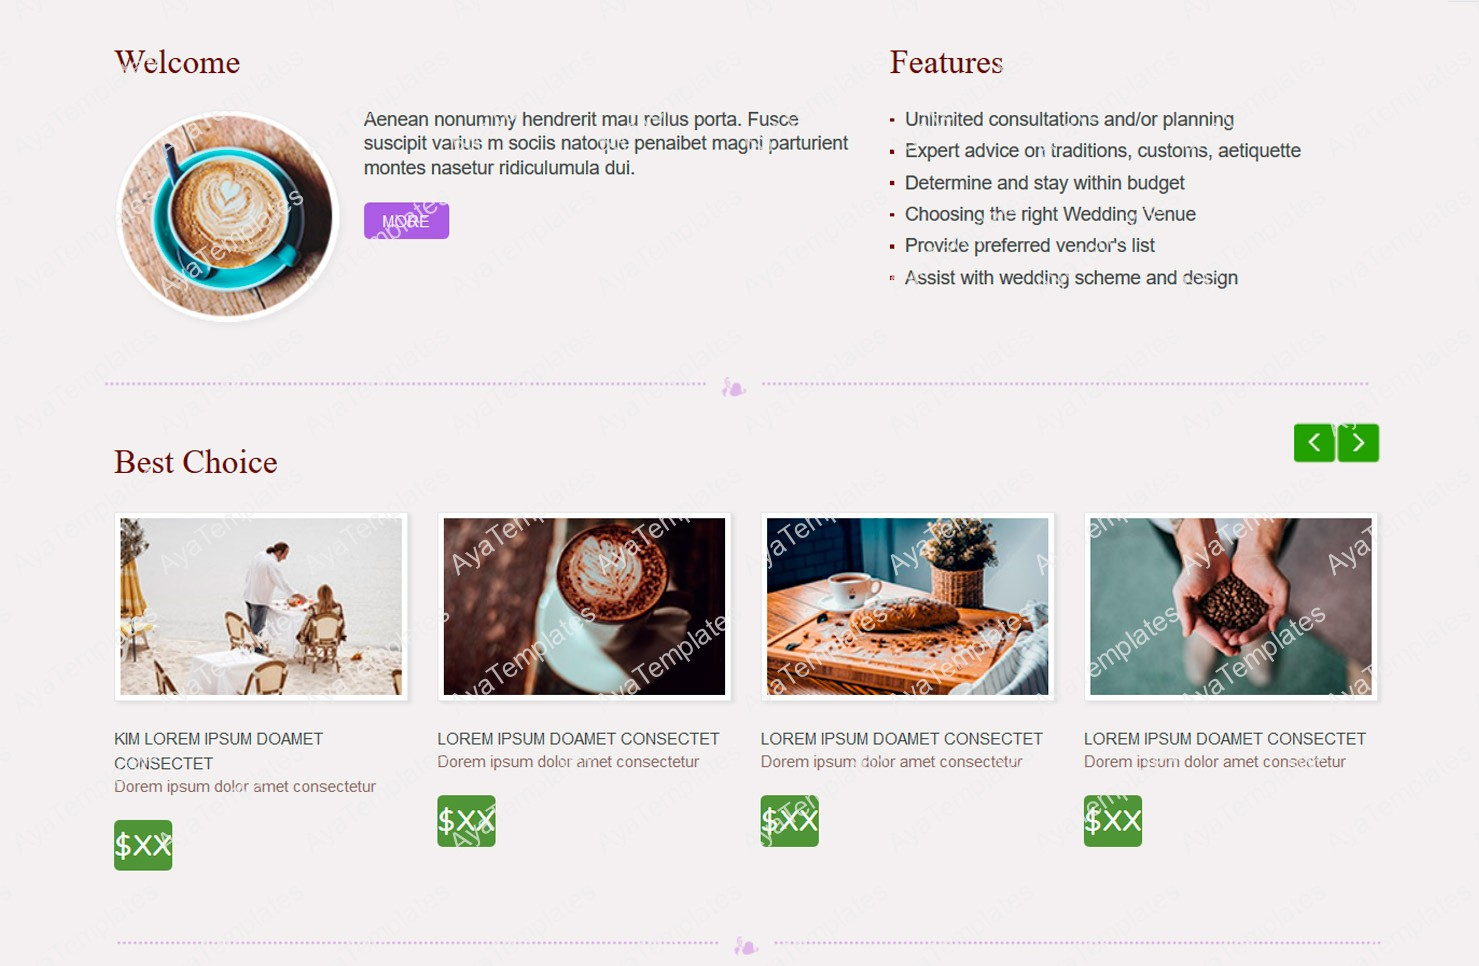 ayafirefly-css-designed-site-layout-2-aya-templates